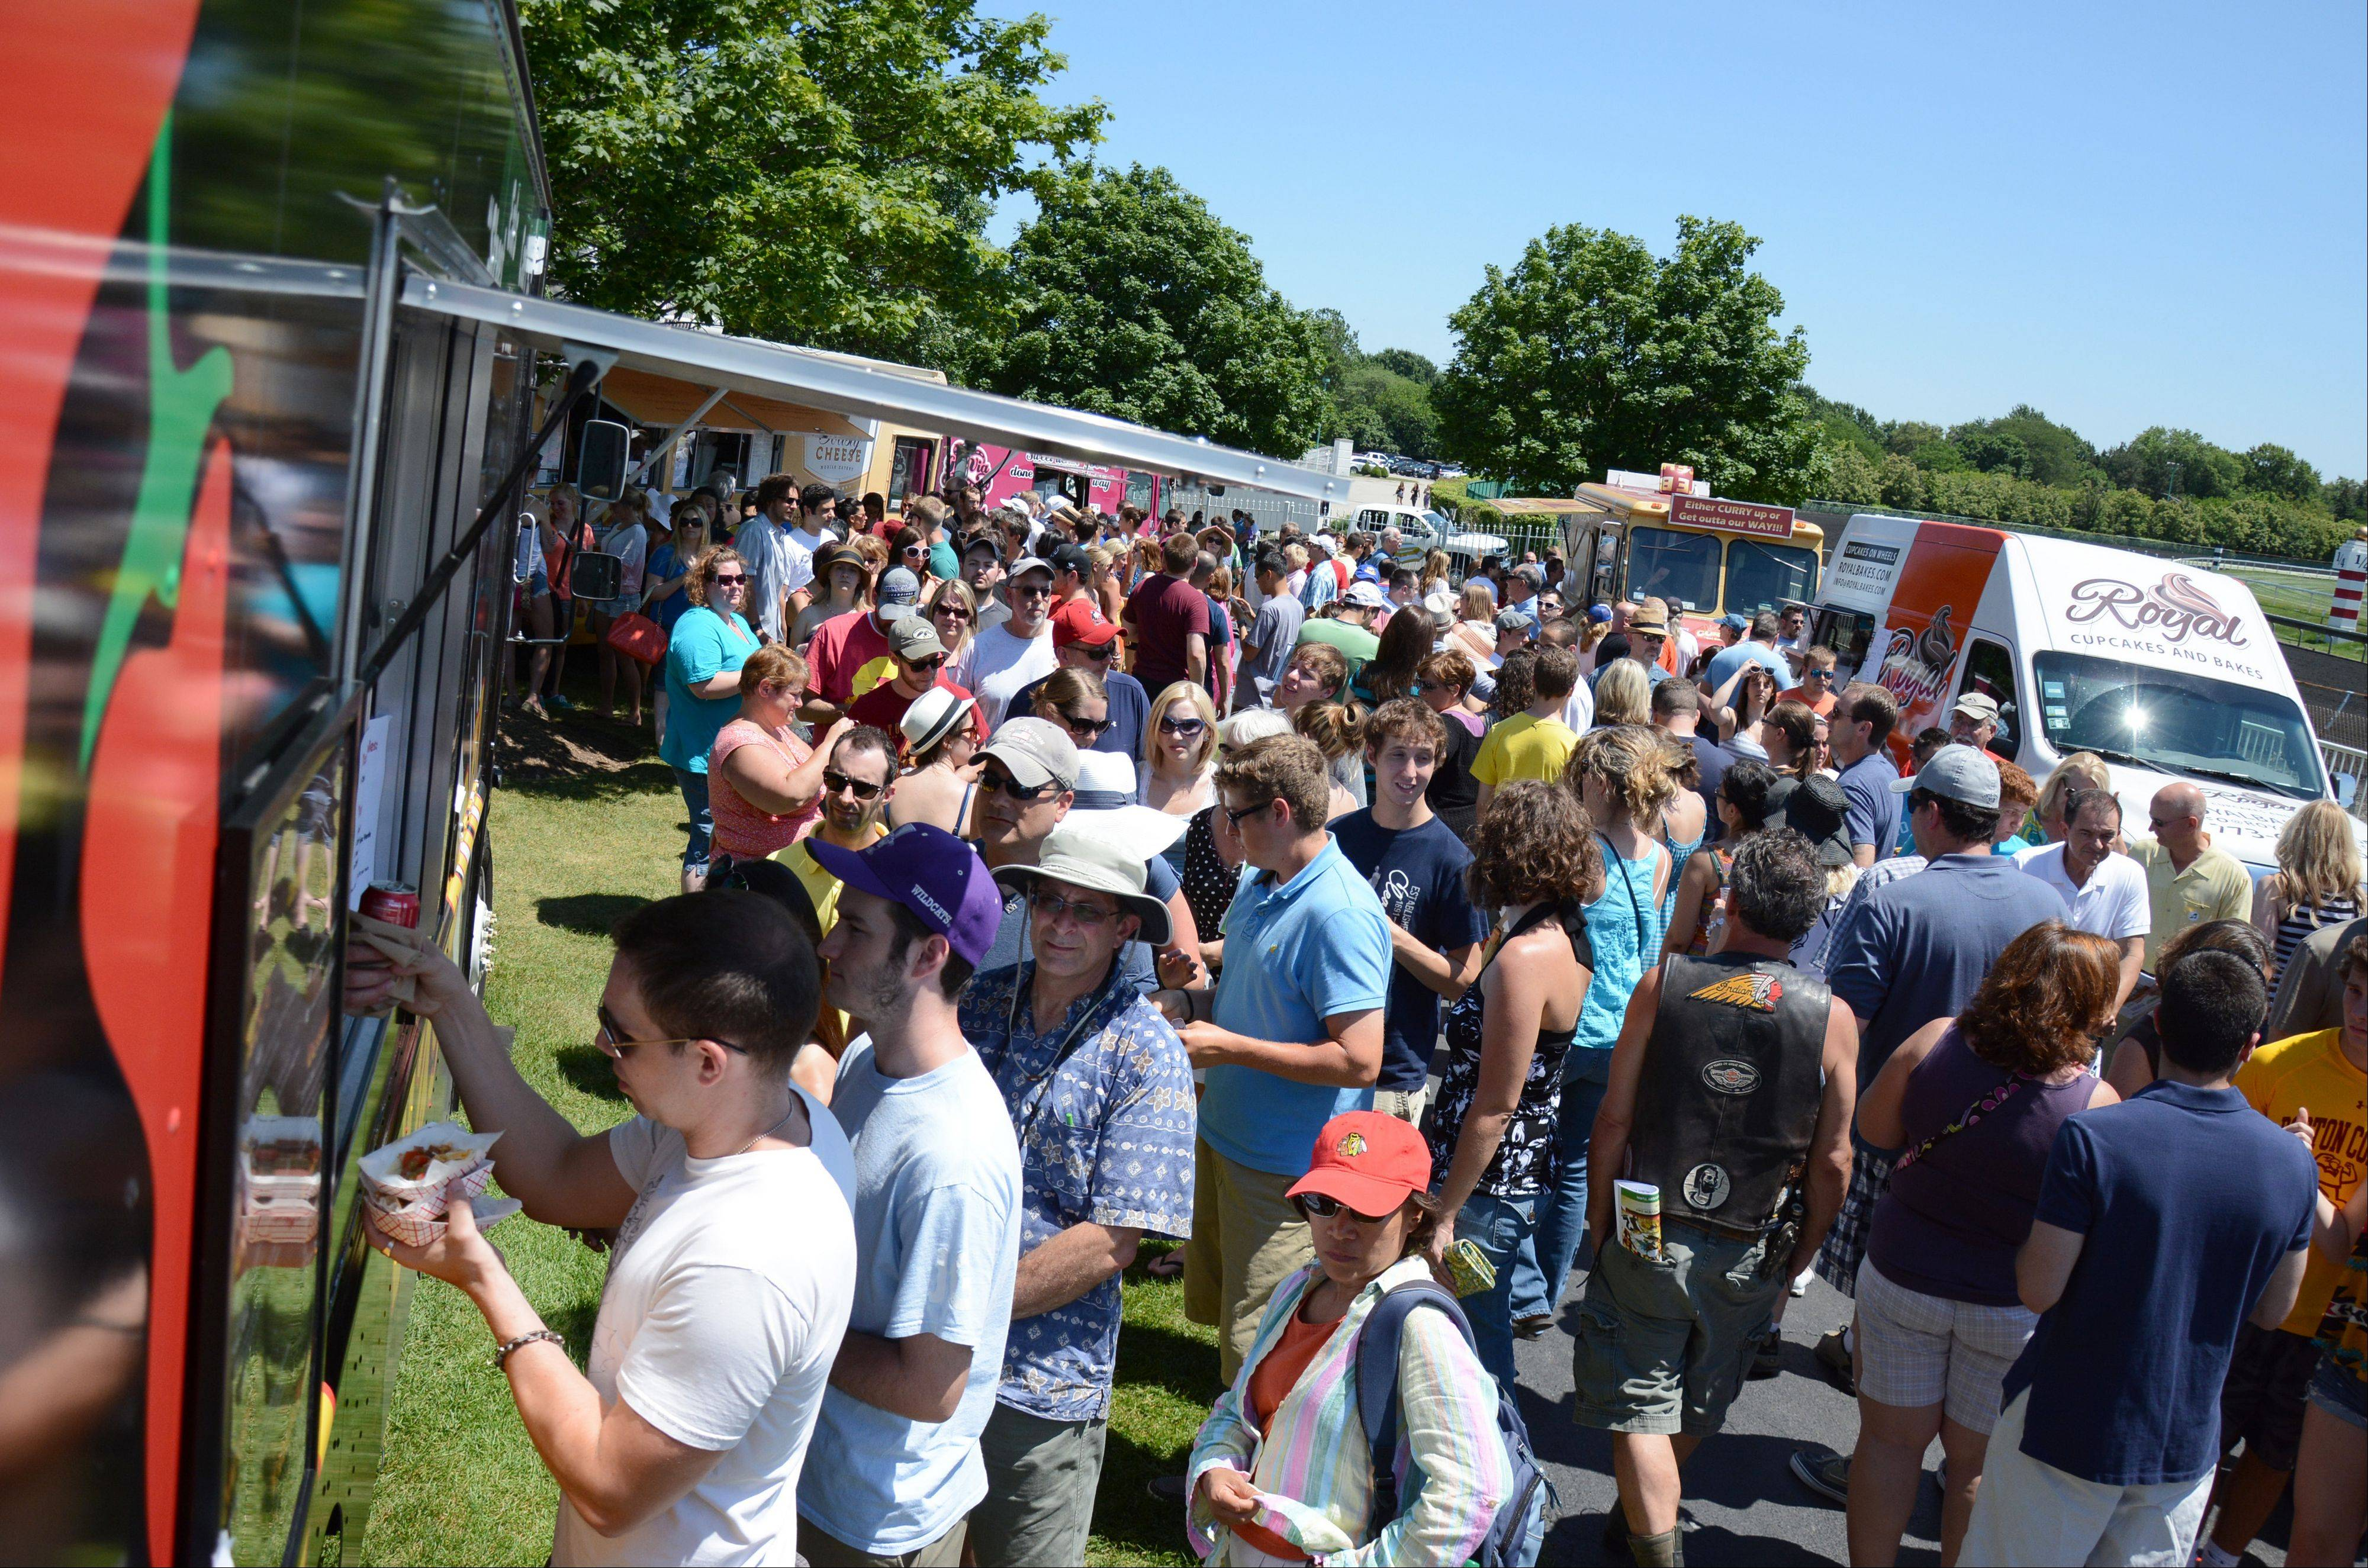 Crowds jam Food Truck Festival at Arlington Park